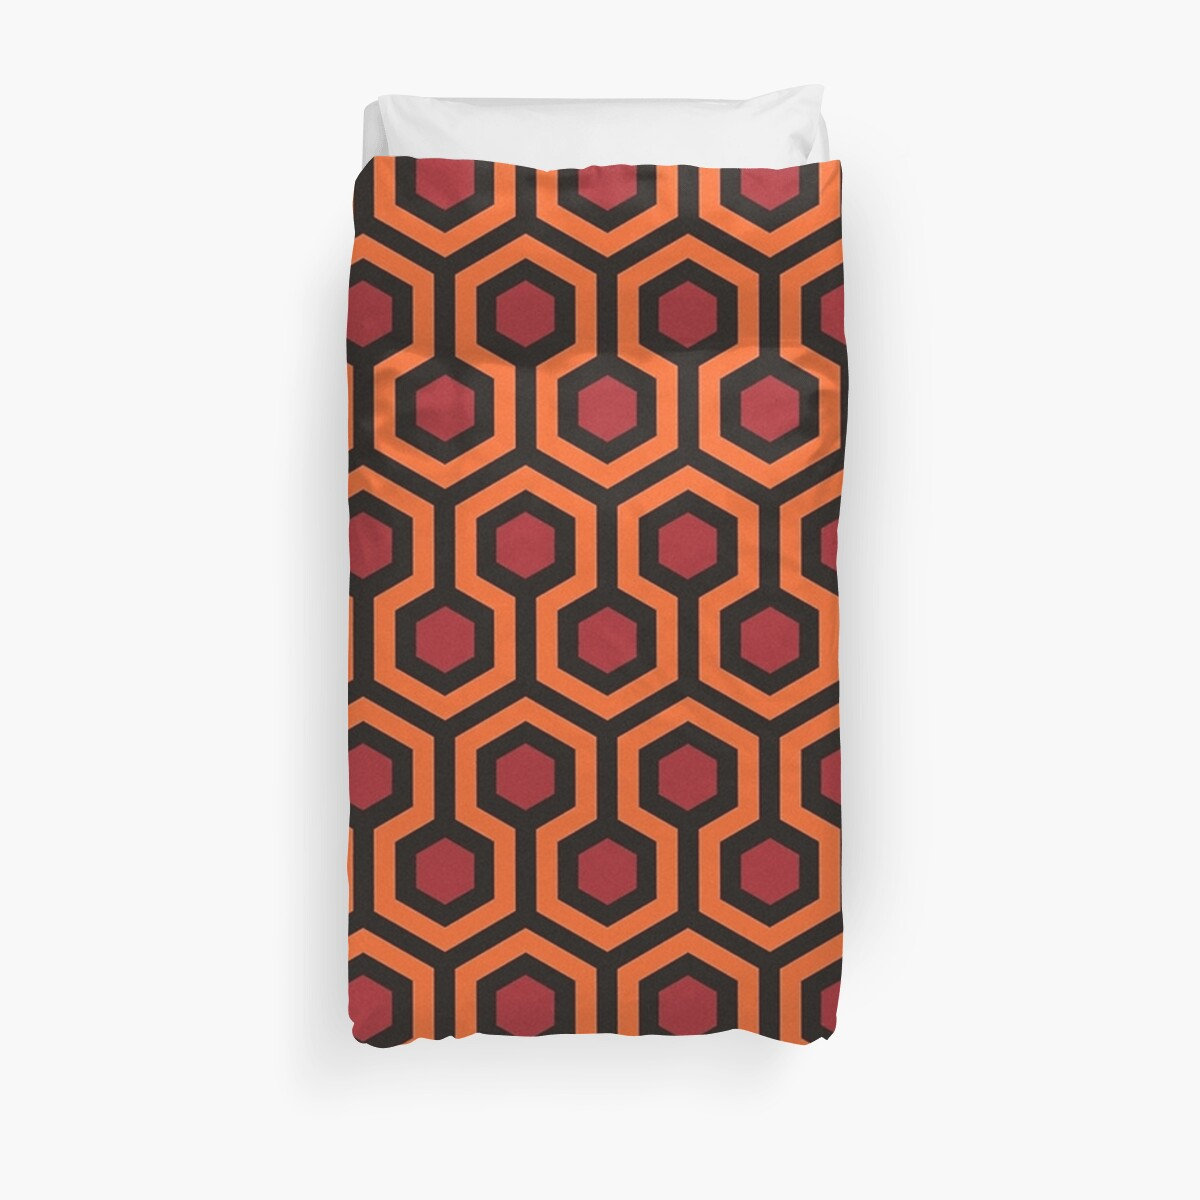 Overlook Hotel Carpet The Shining by prodesigner2